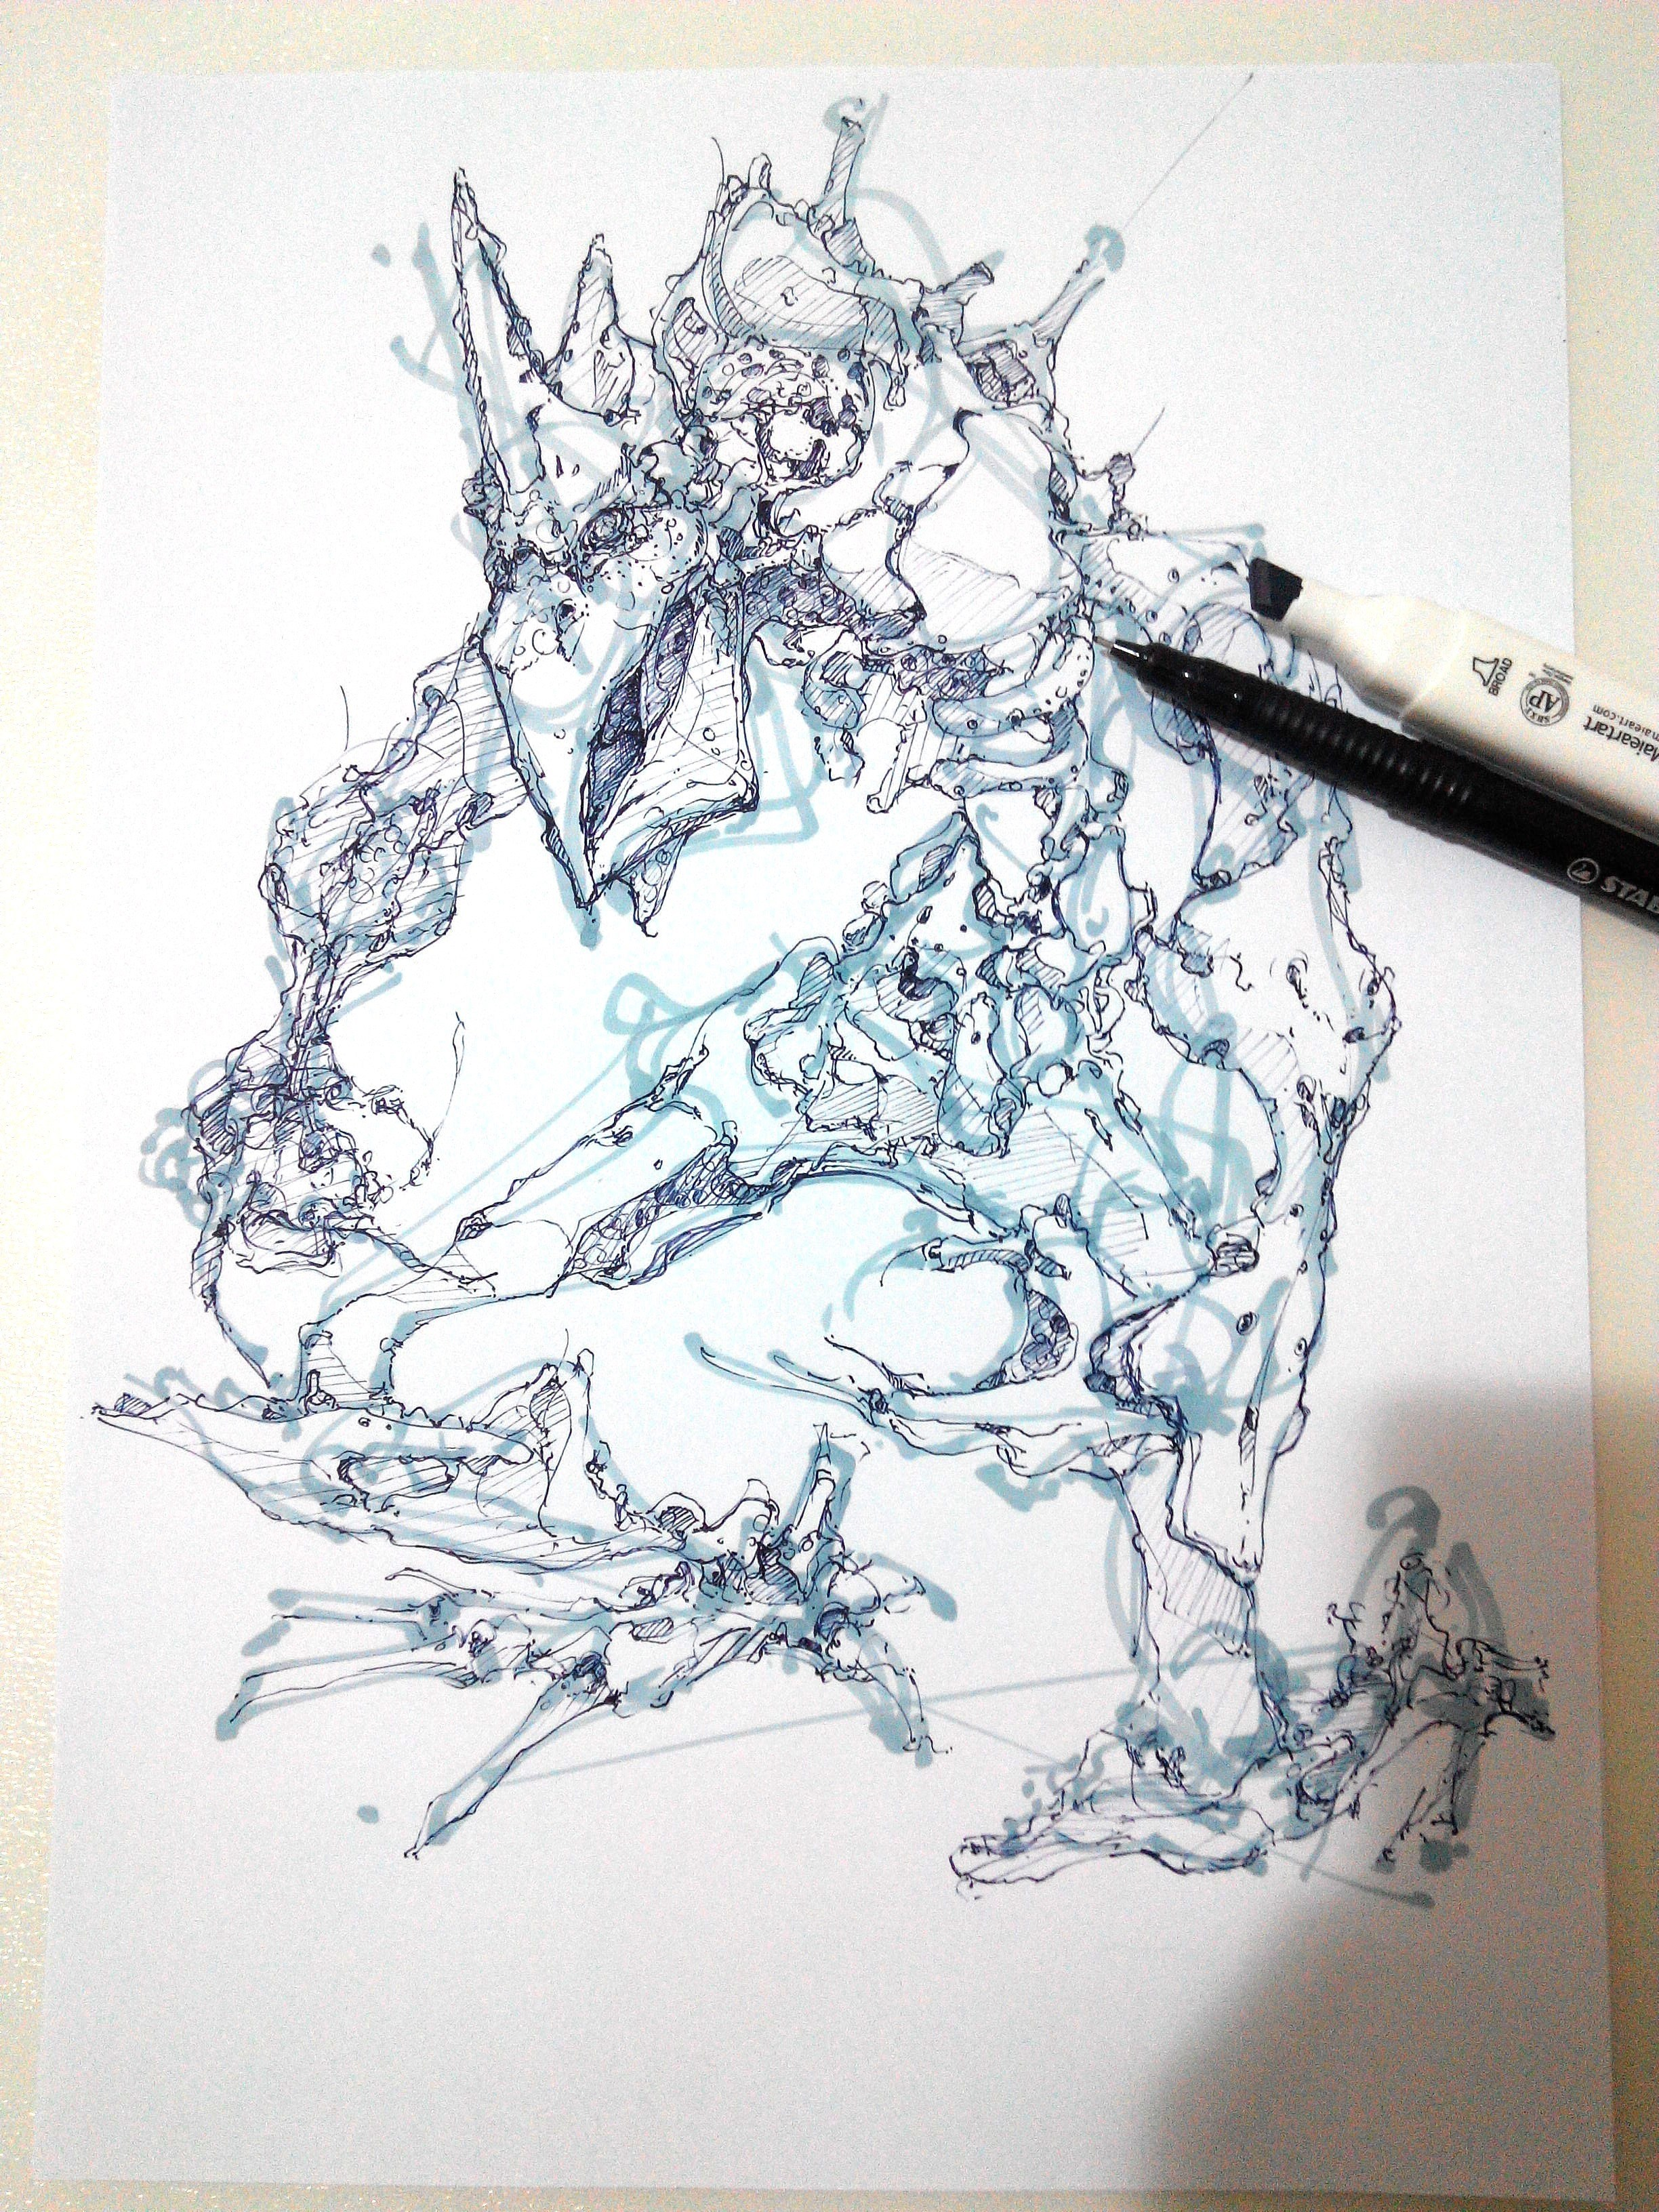 draw with stabilo stylist and marker rio-creature-theDesignSketchbook-61.jpg